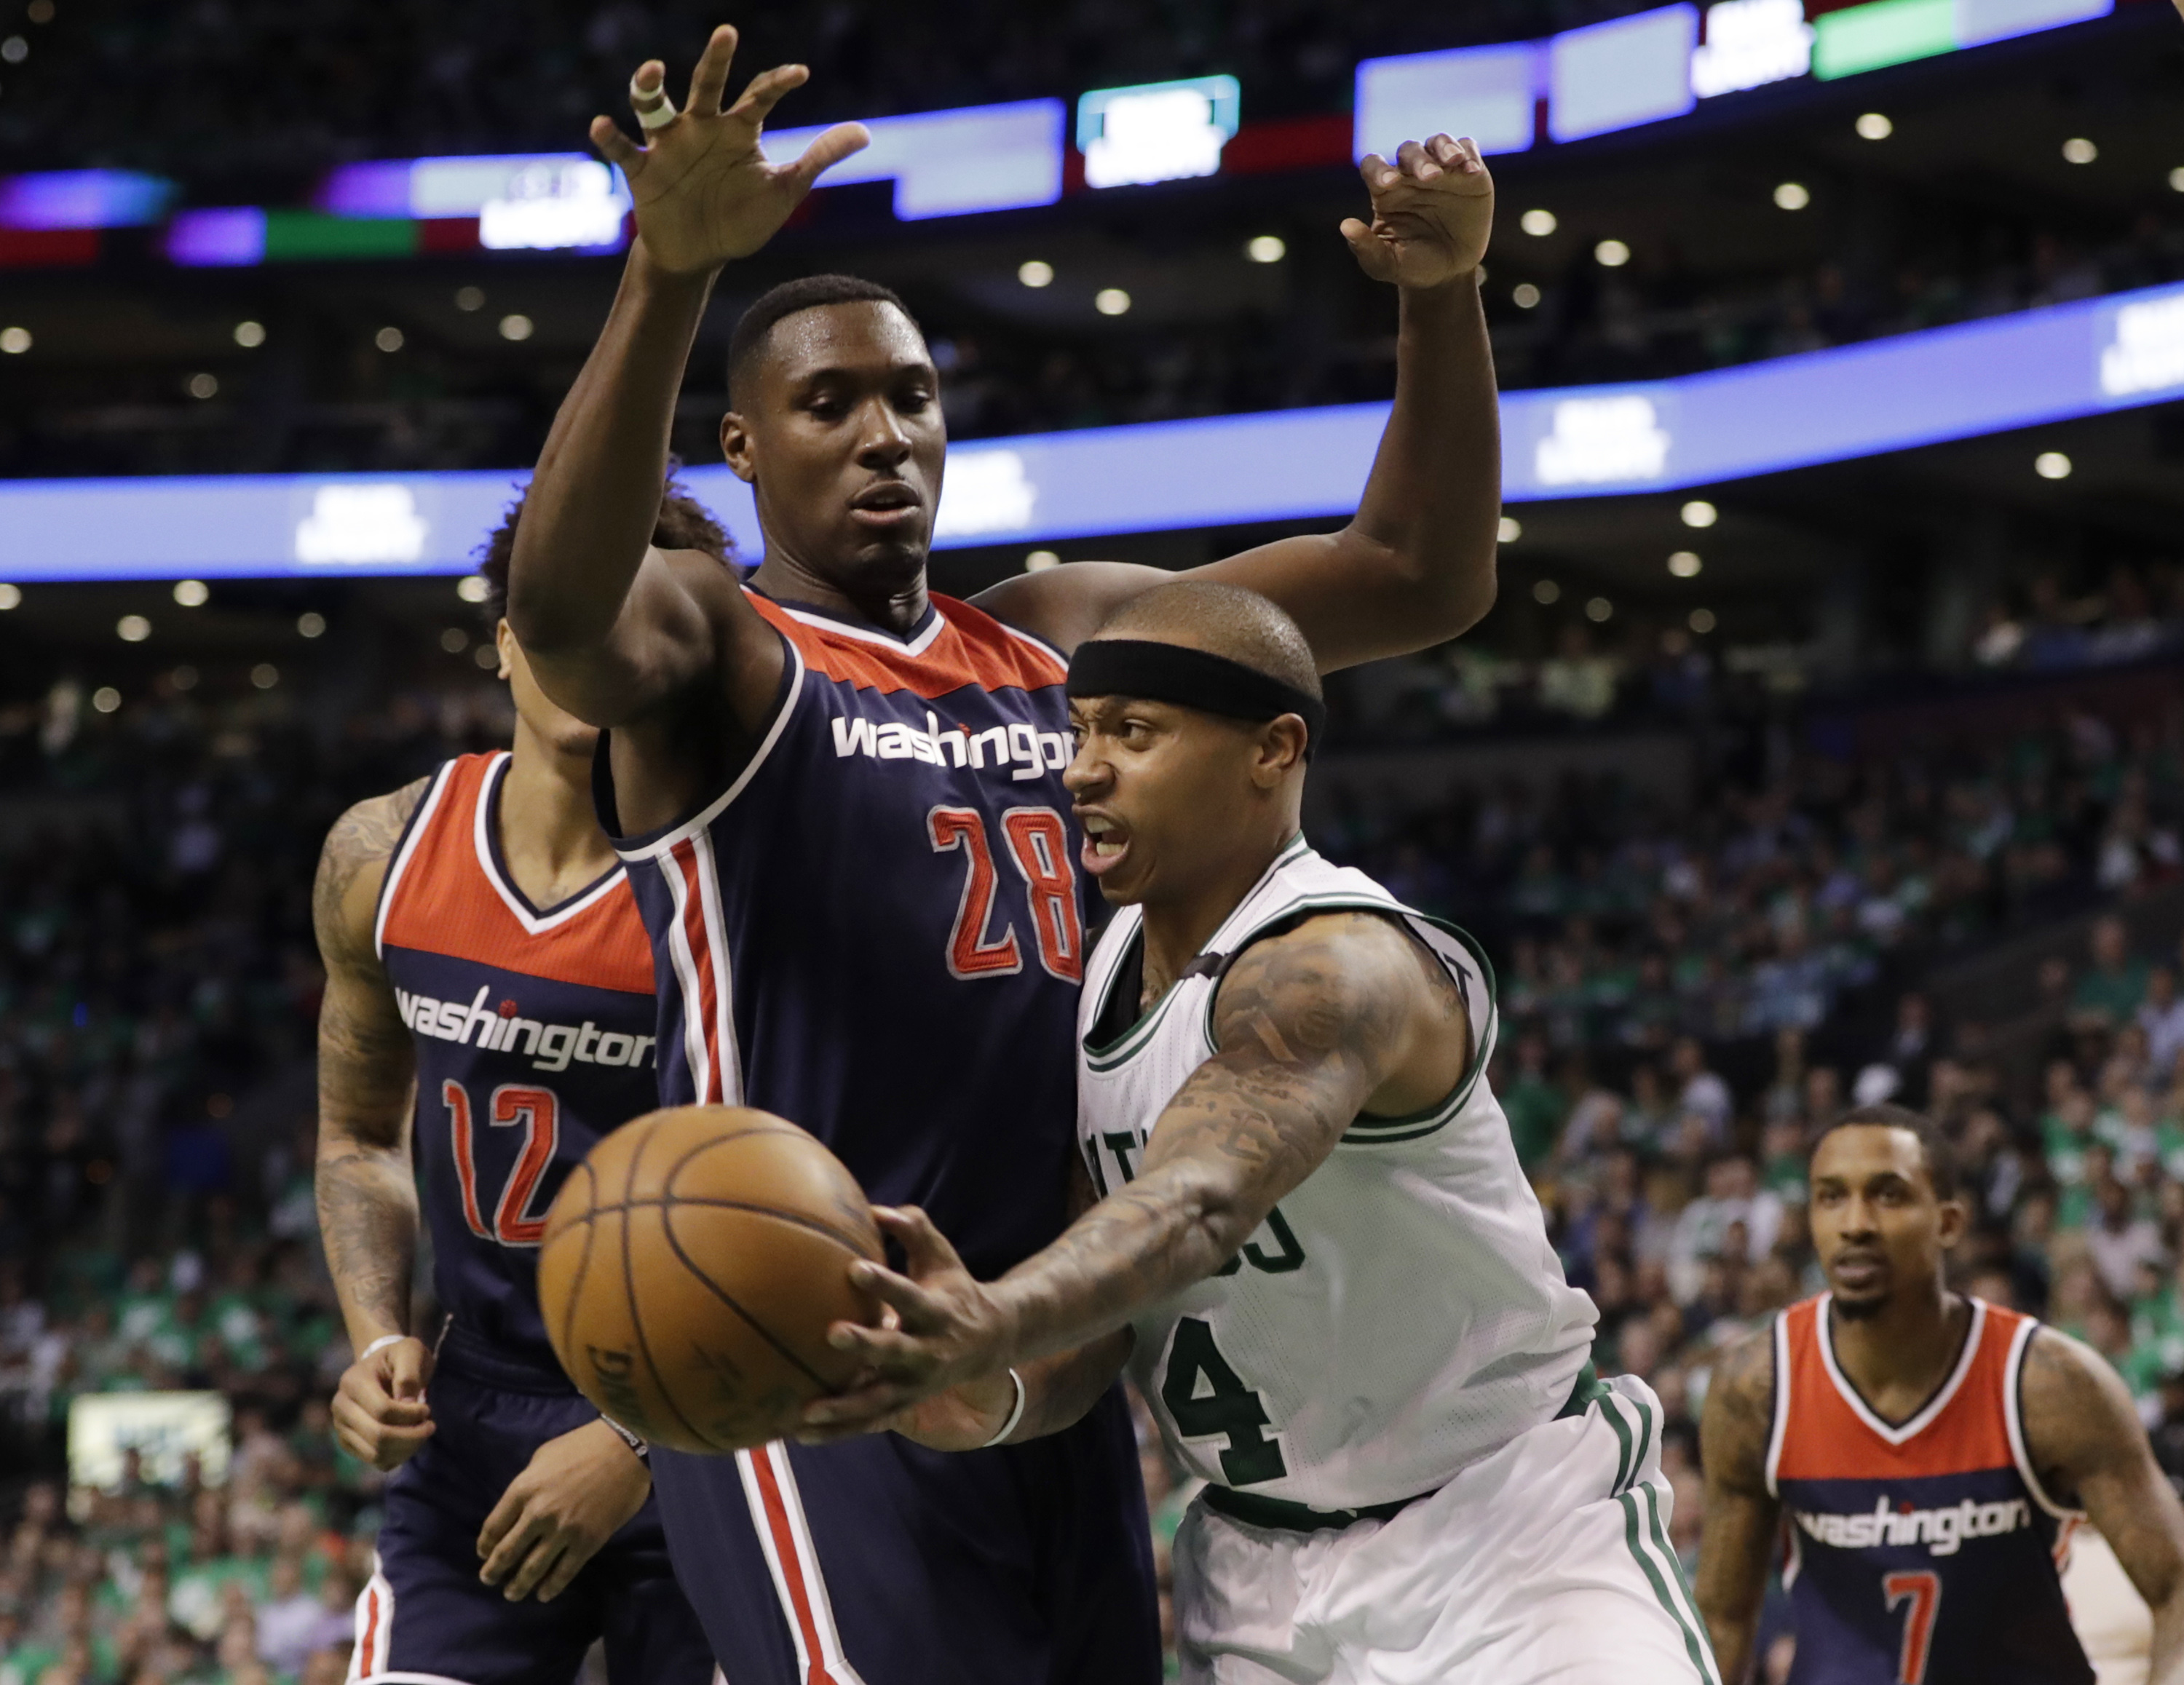 Celtics rout Wizards on home court to take series lead